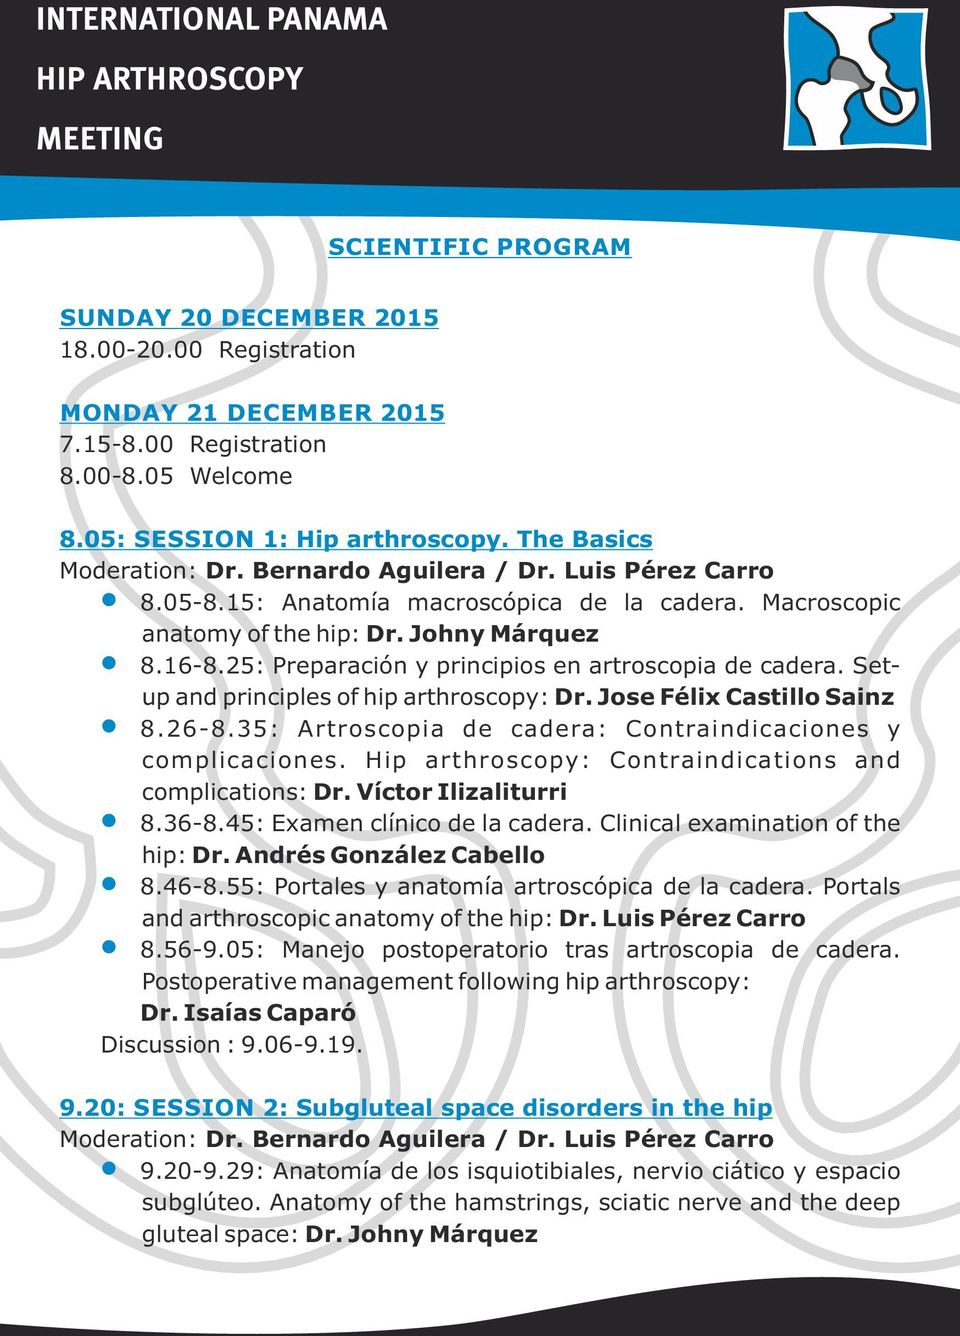 Setup and principles of hip arthroscopy: Dr. Jose Félix Castillo Sainz 8.26-8.35: Artroscopia de cadera: Contraindicaciones y complicaciones. Hip arthroscopy: Contraindications and complications: Dr.